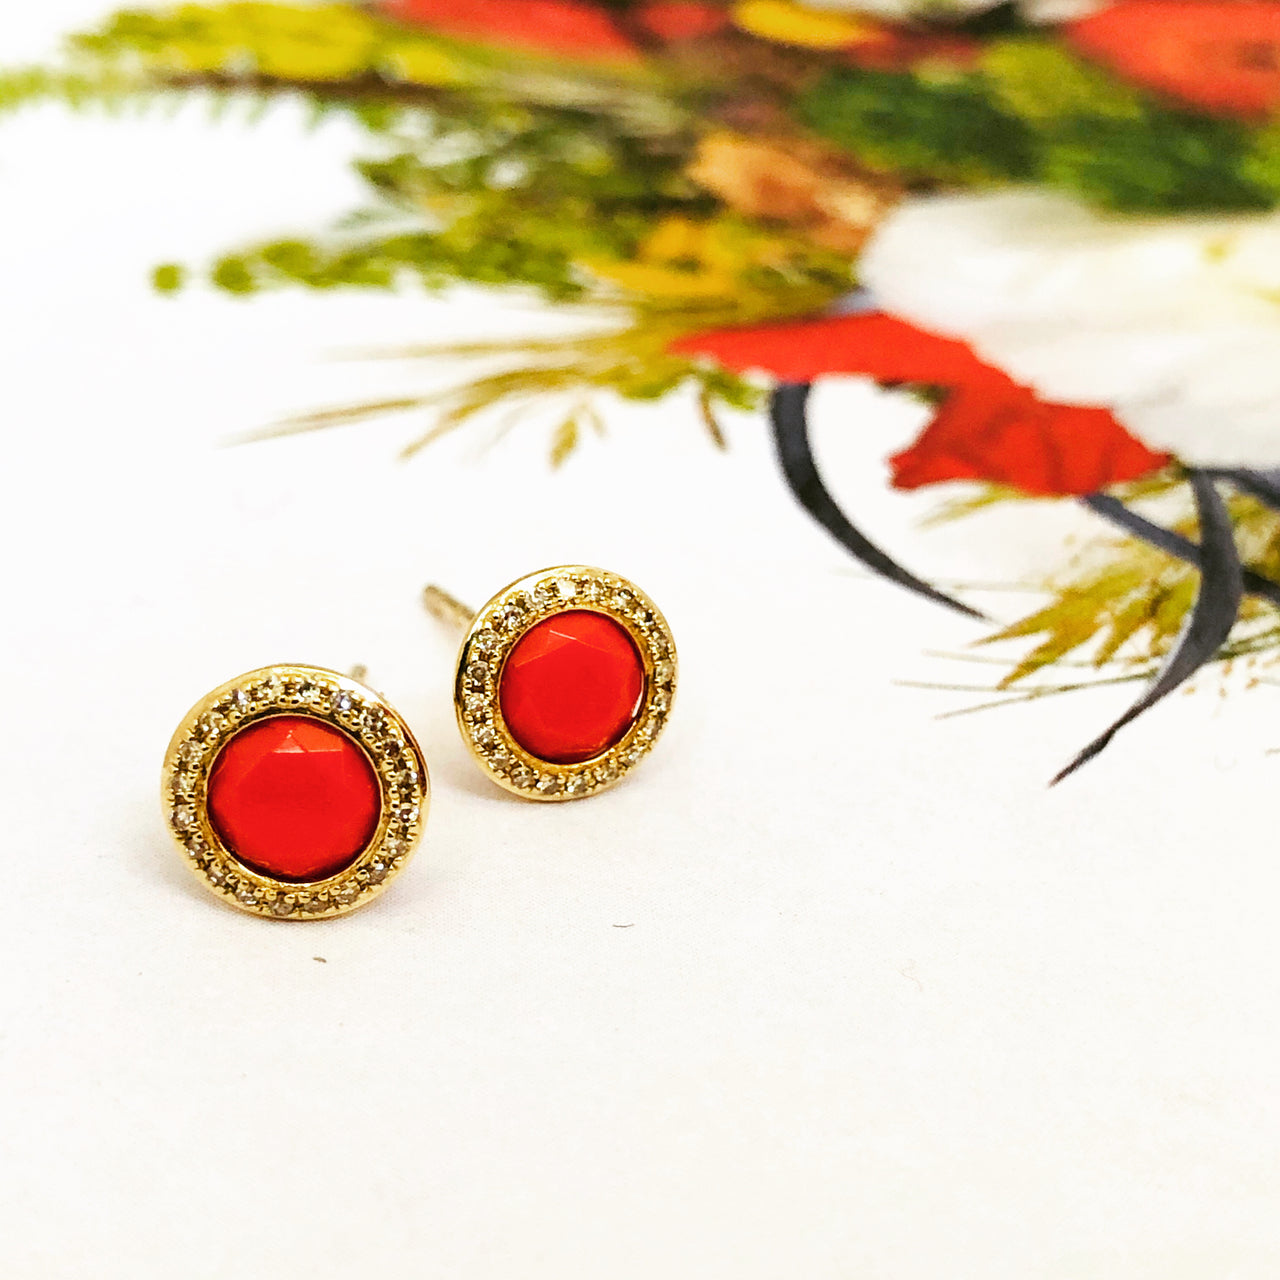 14k Yellow Gold Coral and Diamond Earrings.